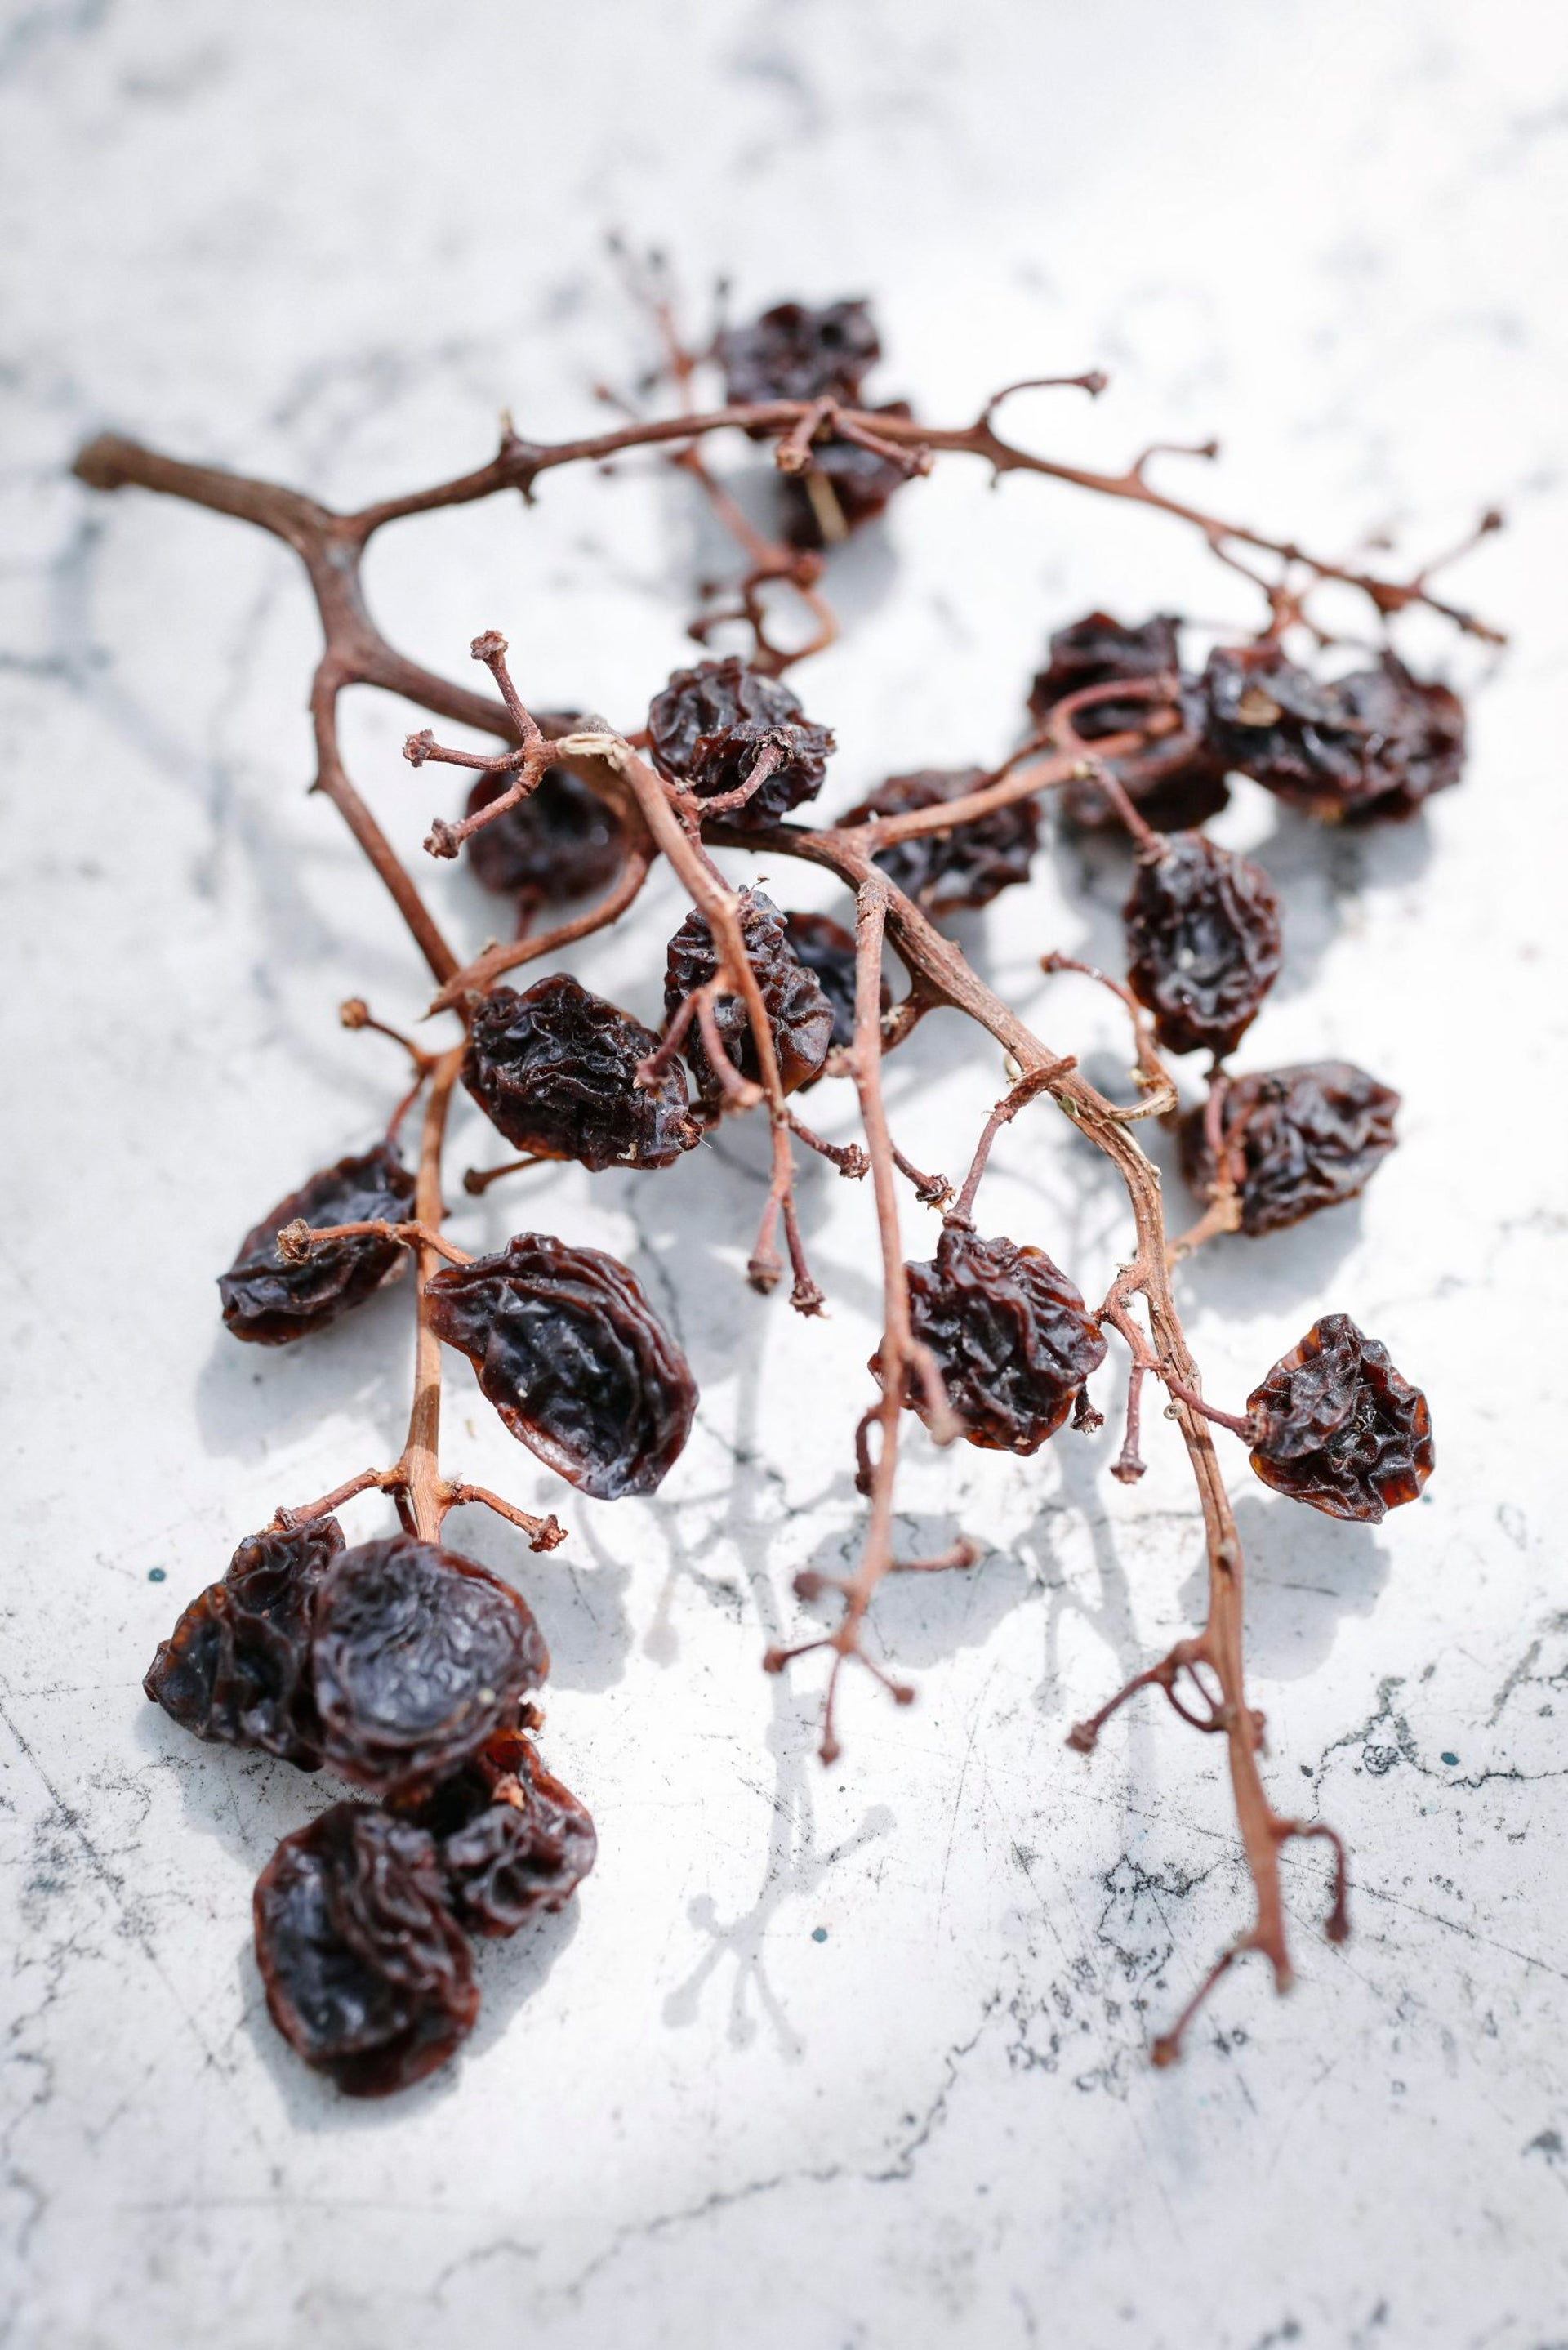 Raisins ready to be separated from their stems.